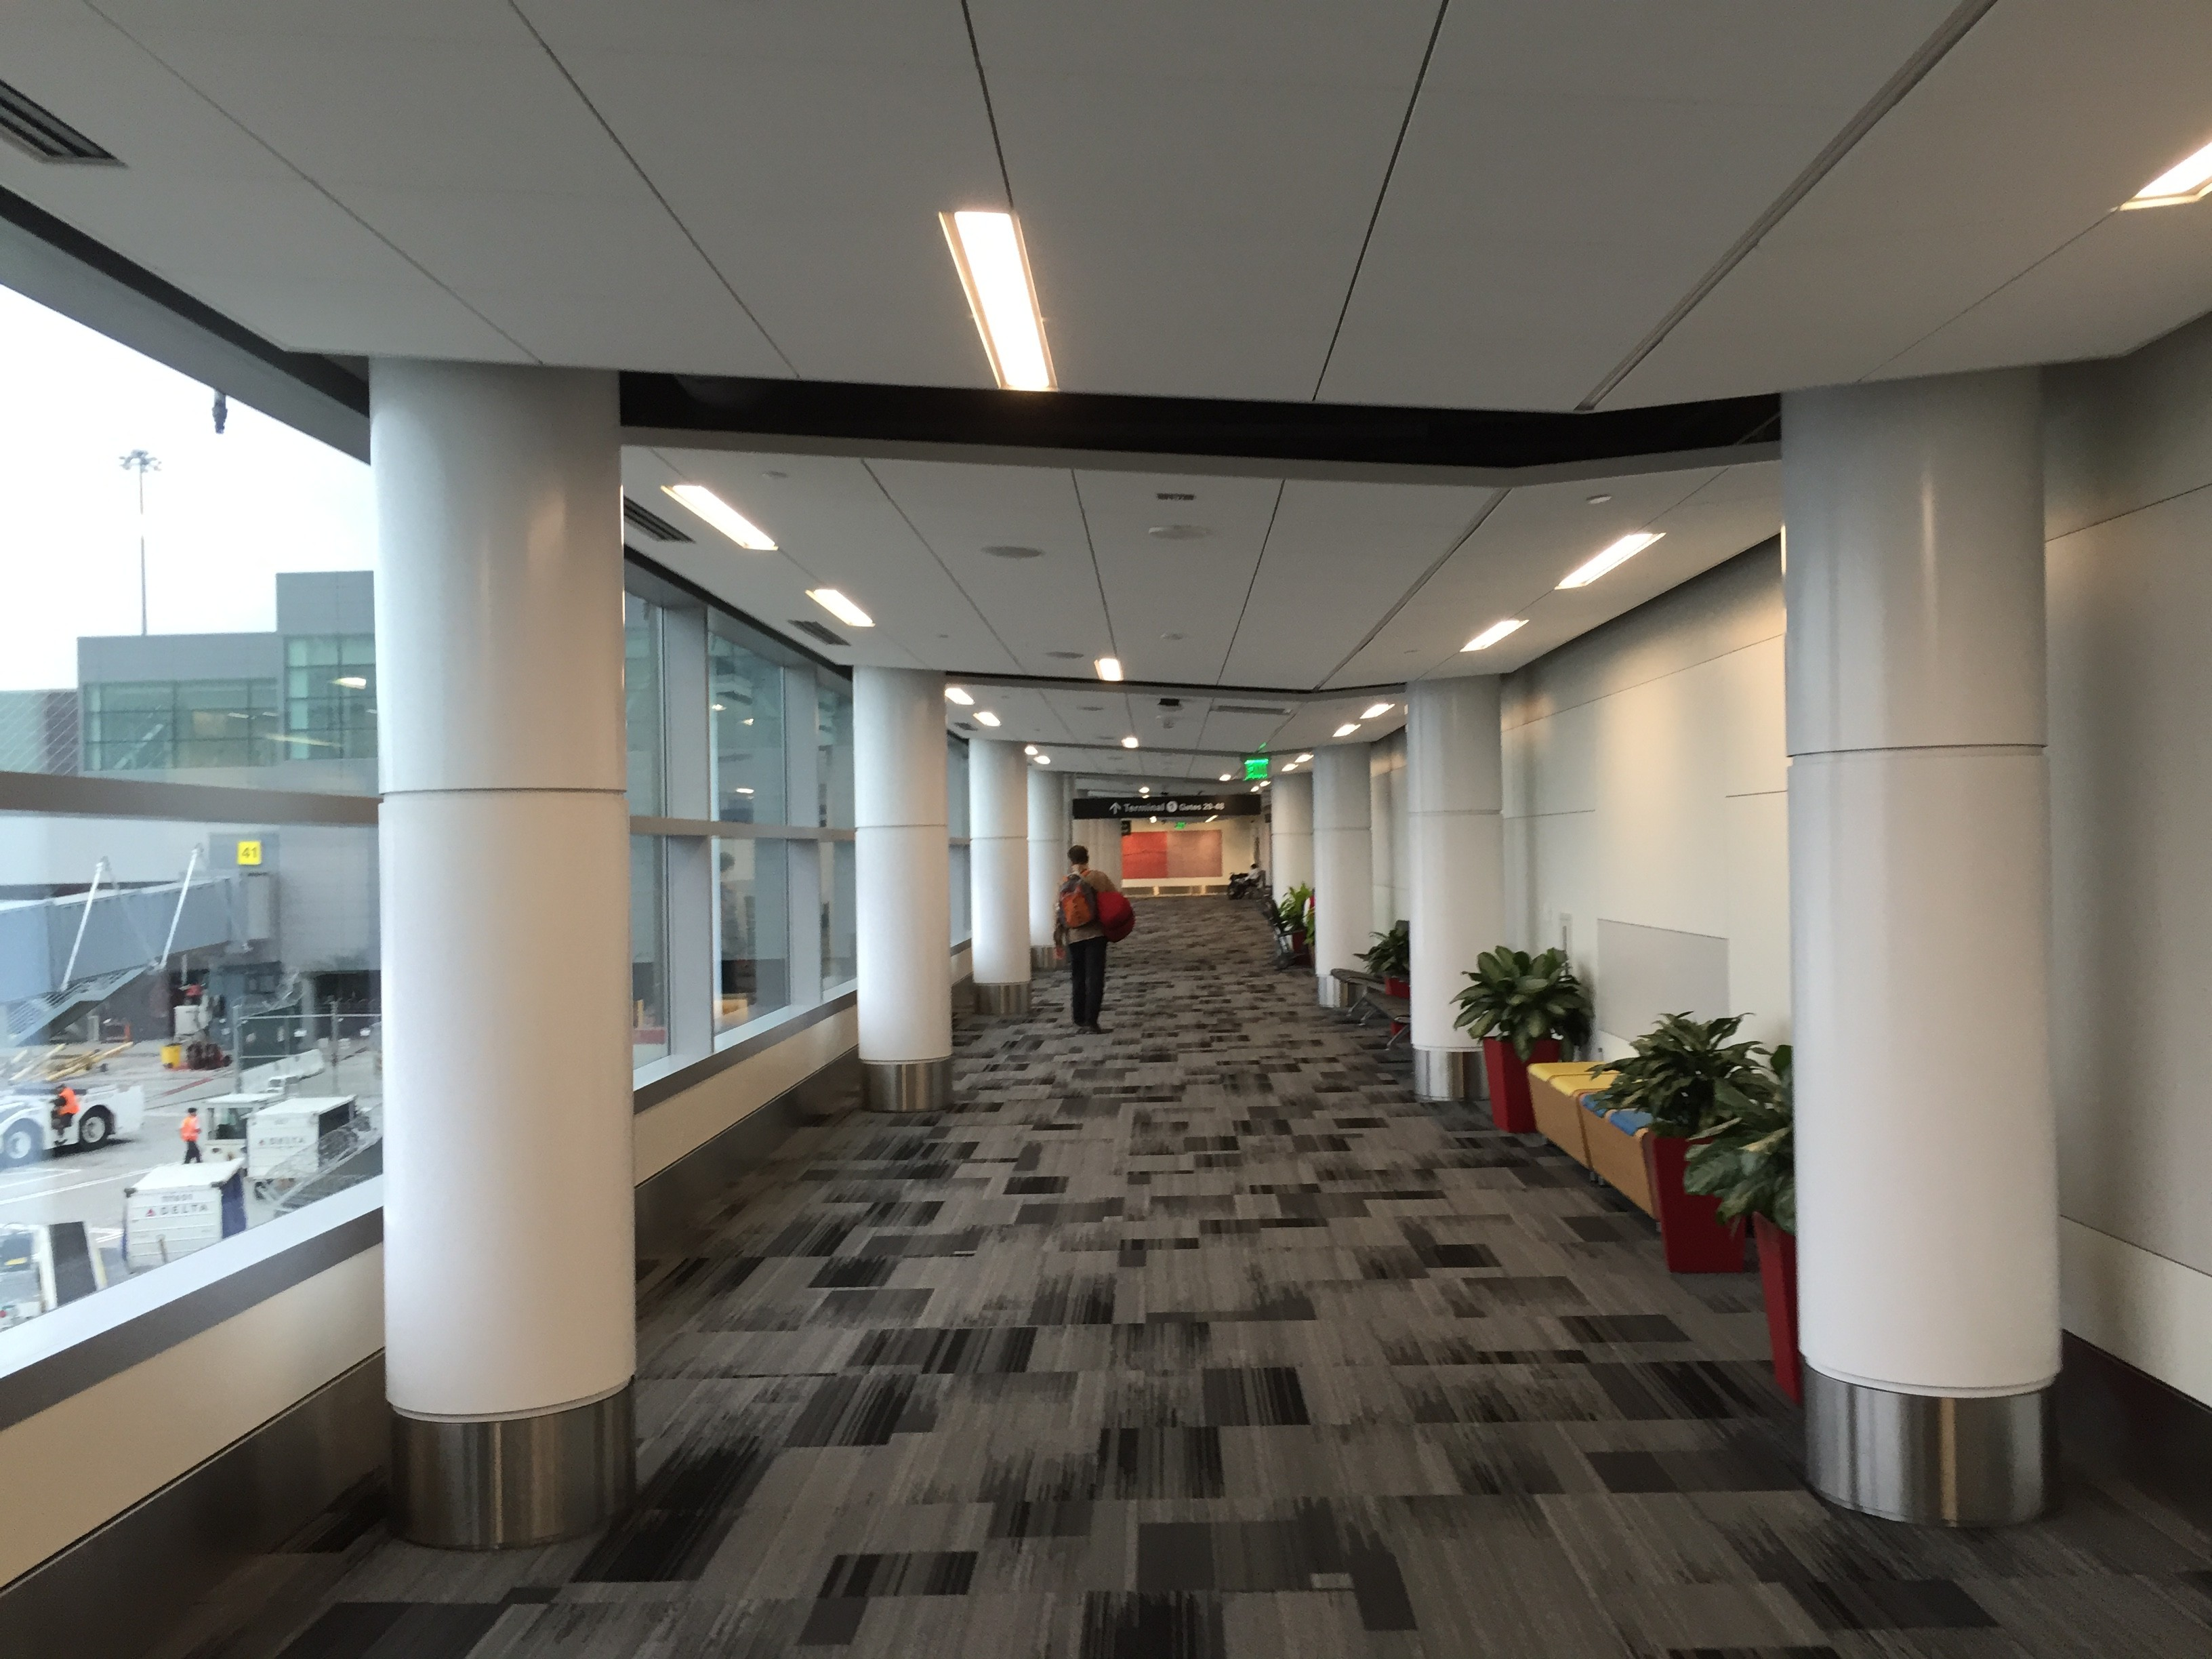 United to remain in Terminal 1 at SFO until 2014 - TravelSkills